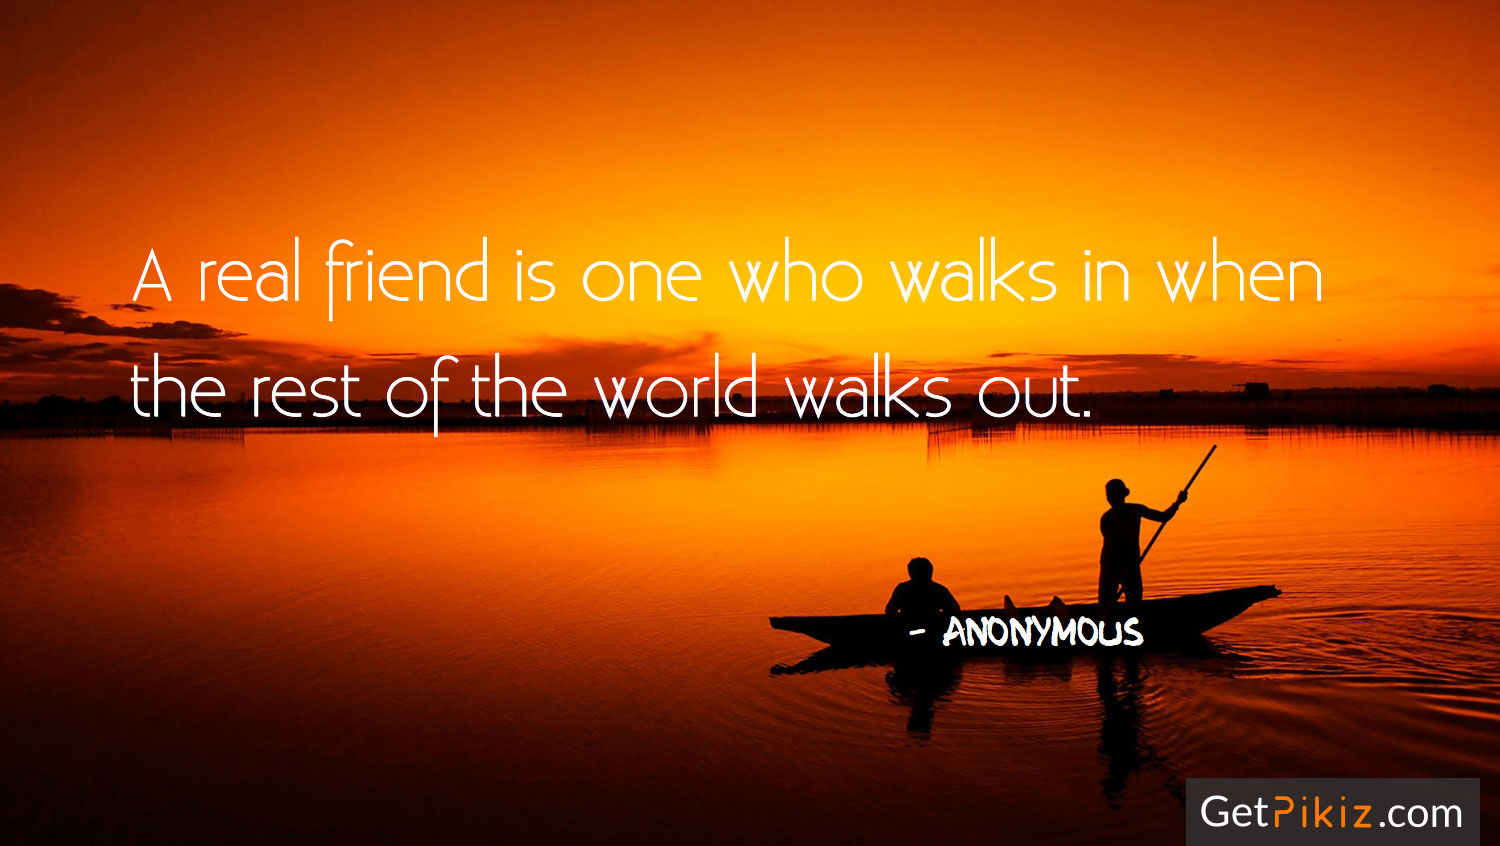 A real friend is one who walks in when the rest of the world walks out. – Anonymous